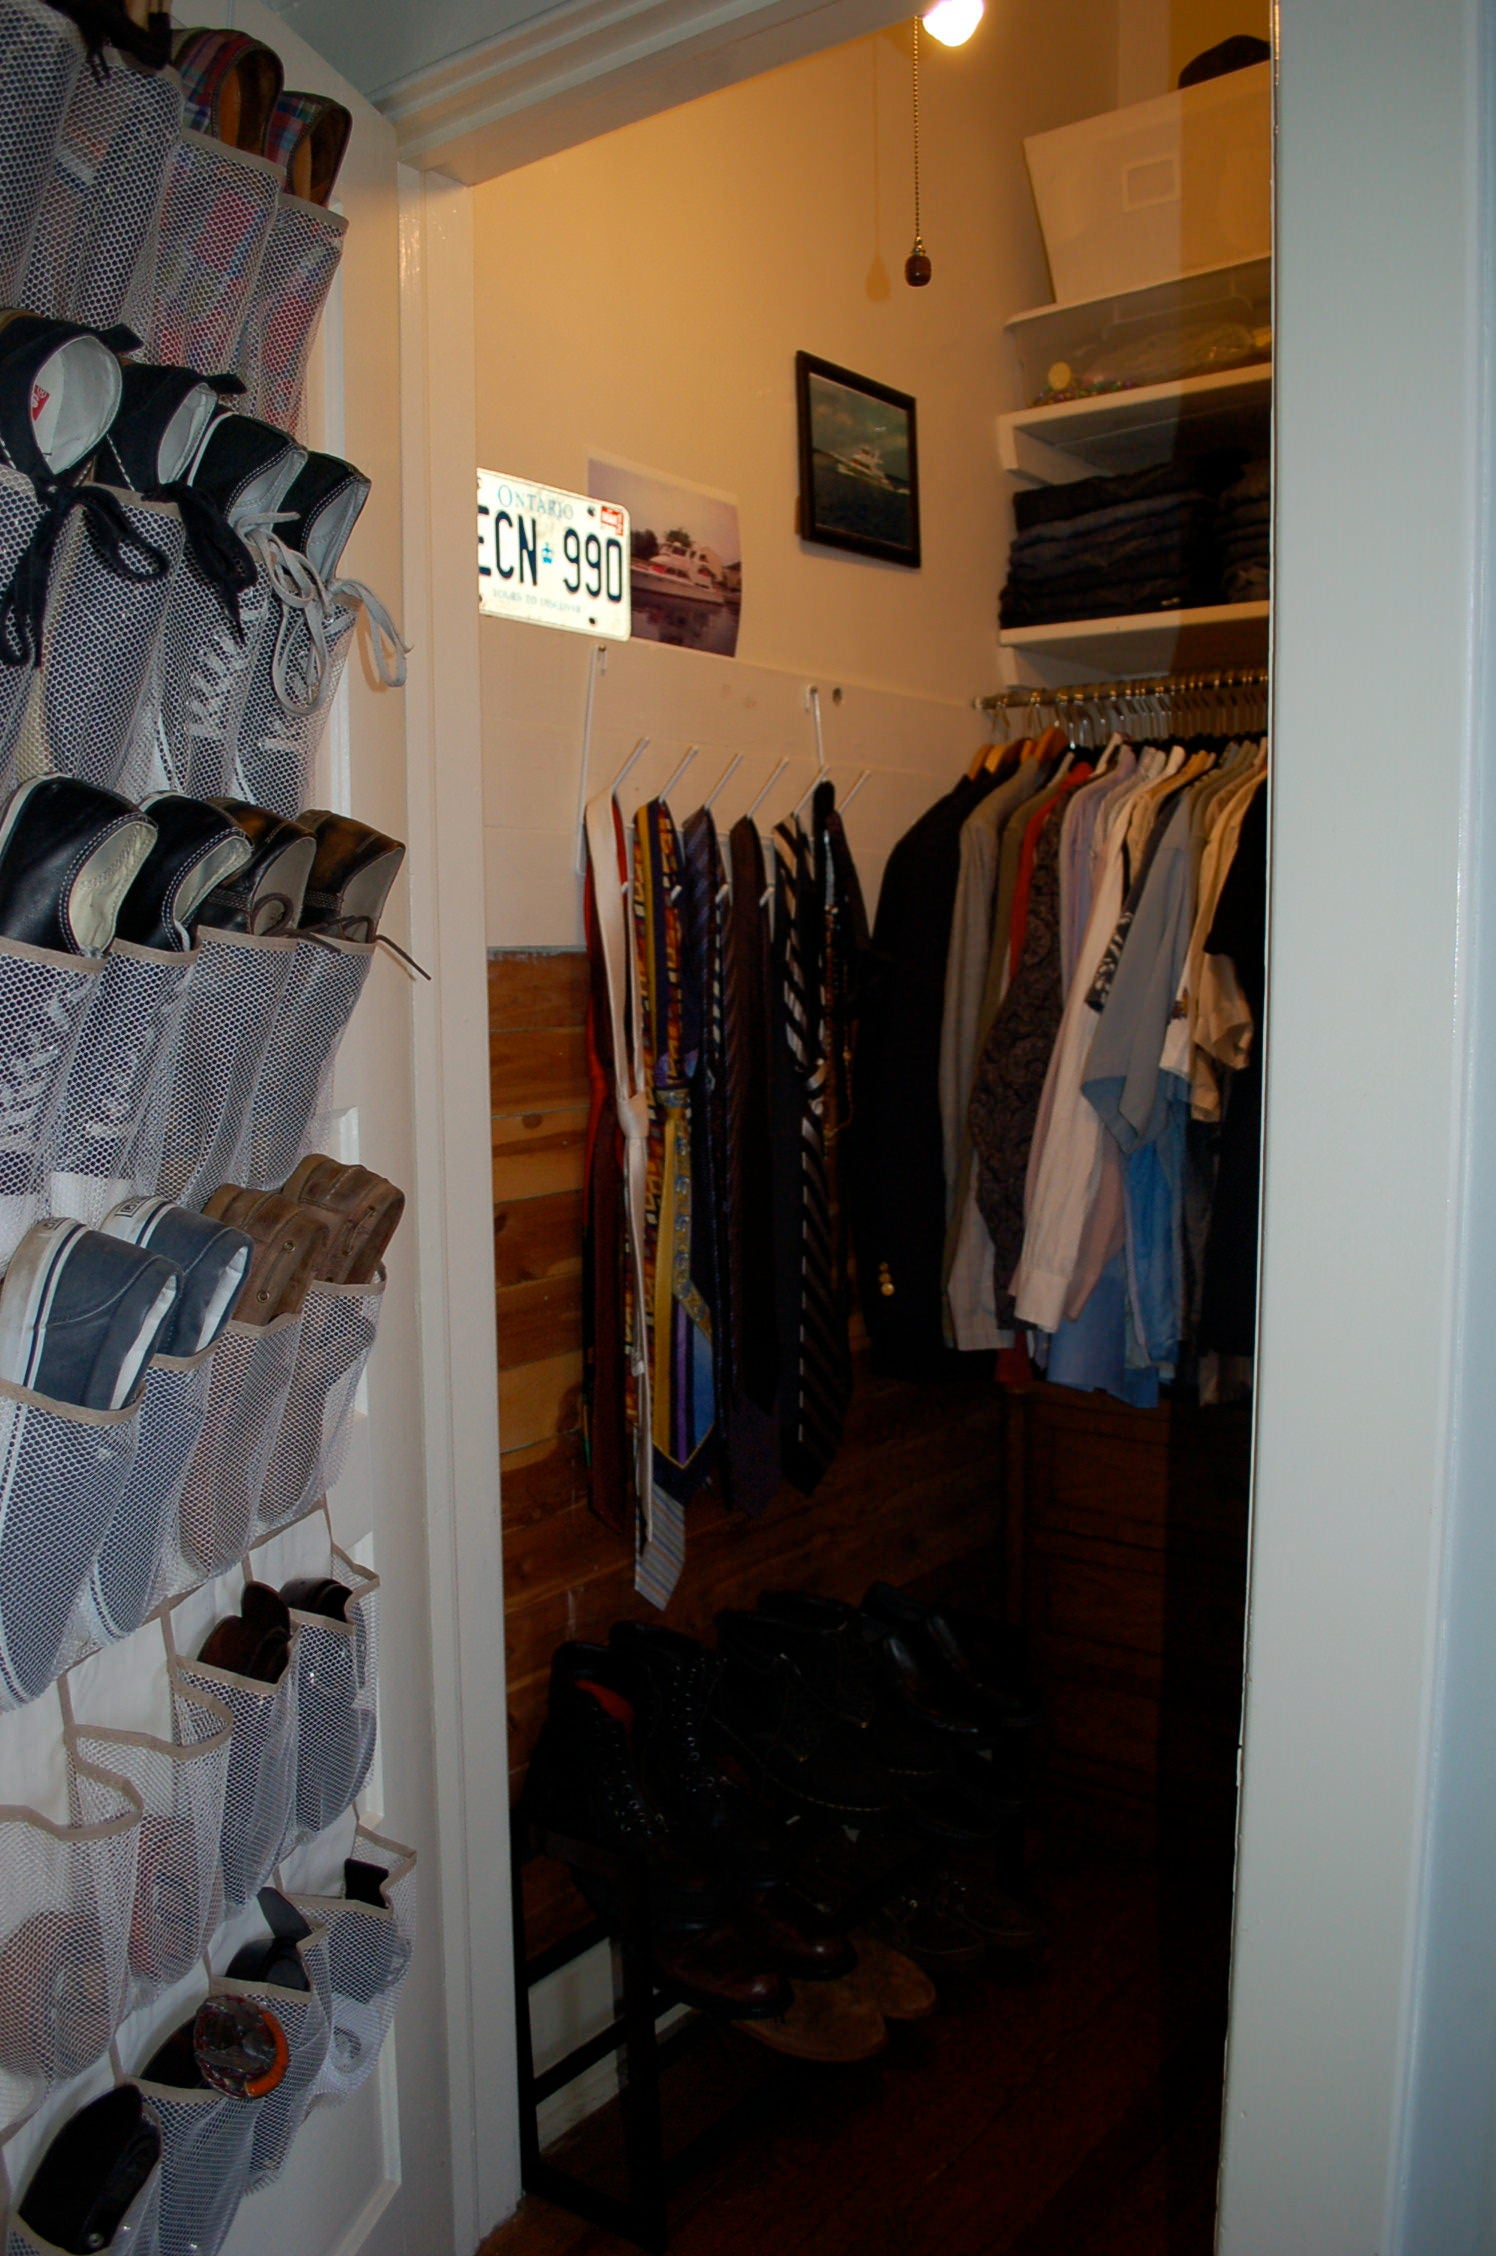 organized closet, shoe rack, matching hangers